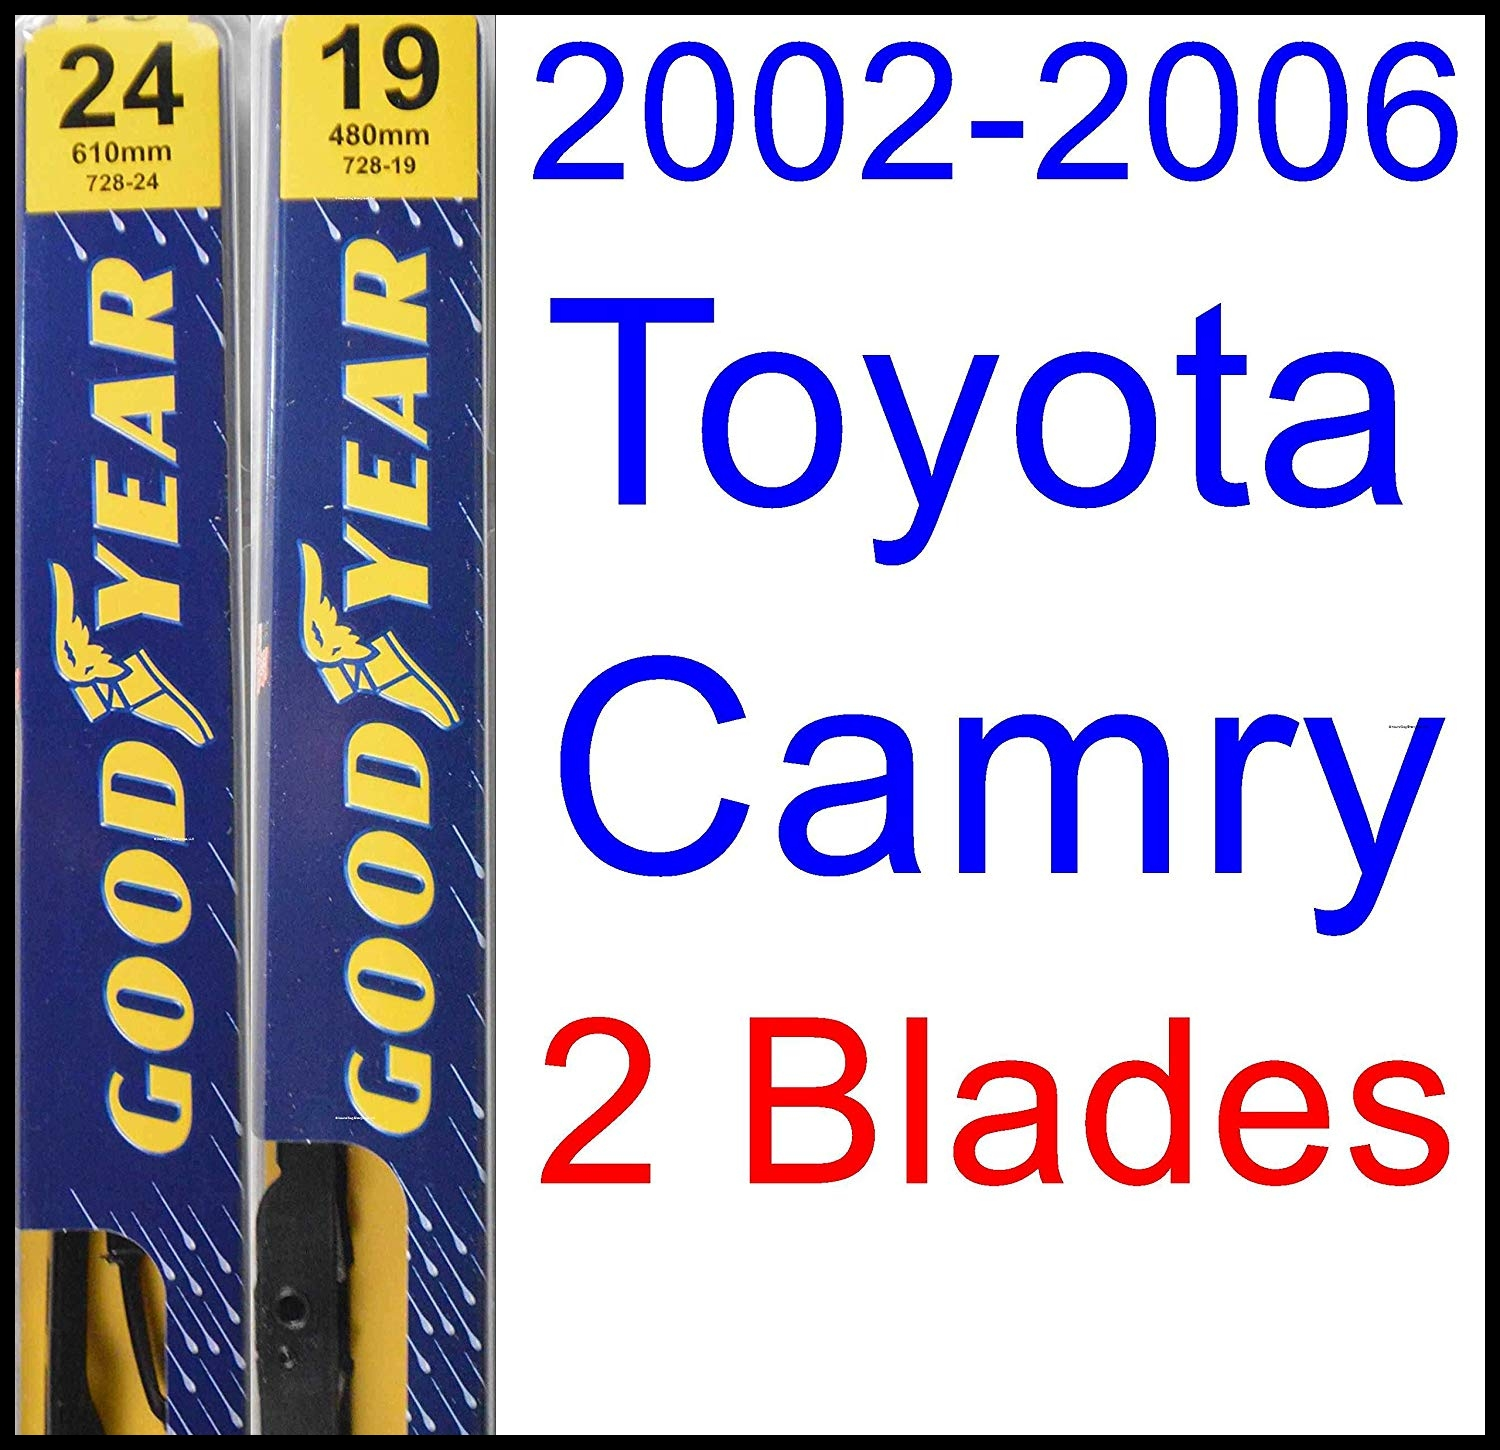 Amazon 2002 2006 Toyota Camry Replacement Wiper Blade Set Kit Set of 2 Blades Goodyear Wiper Blades Premium 2003 2004 2005 Automotive